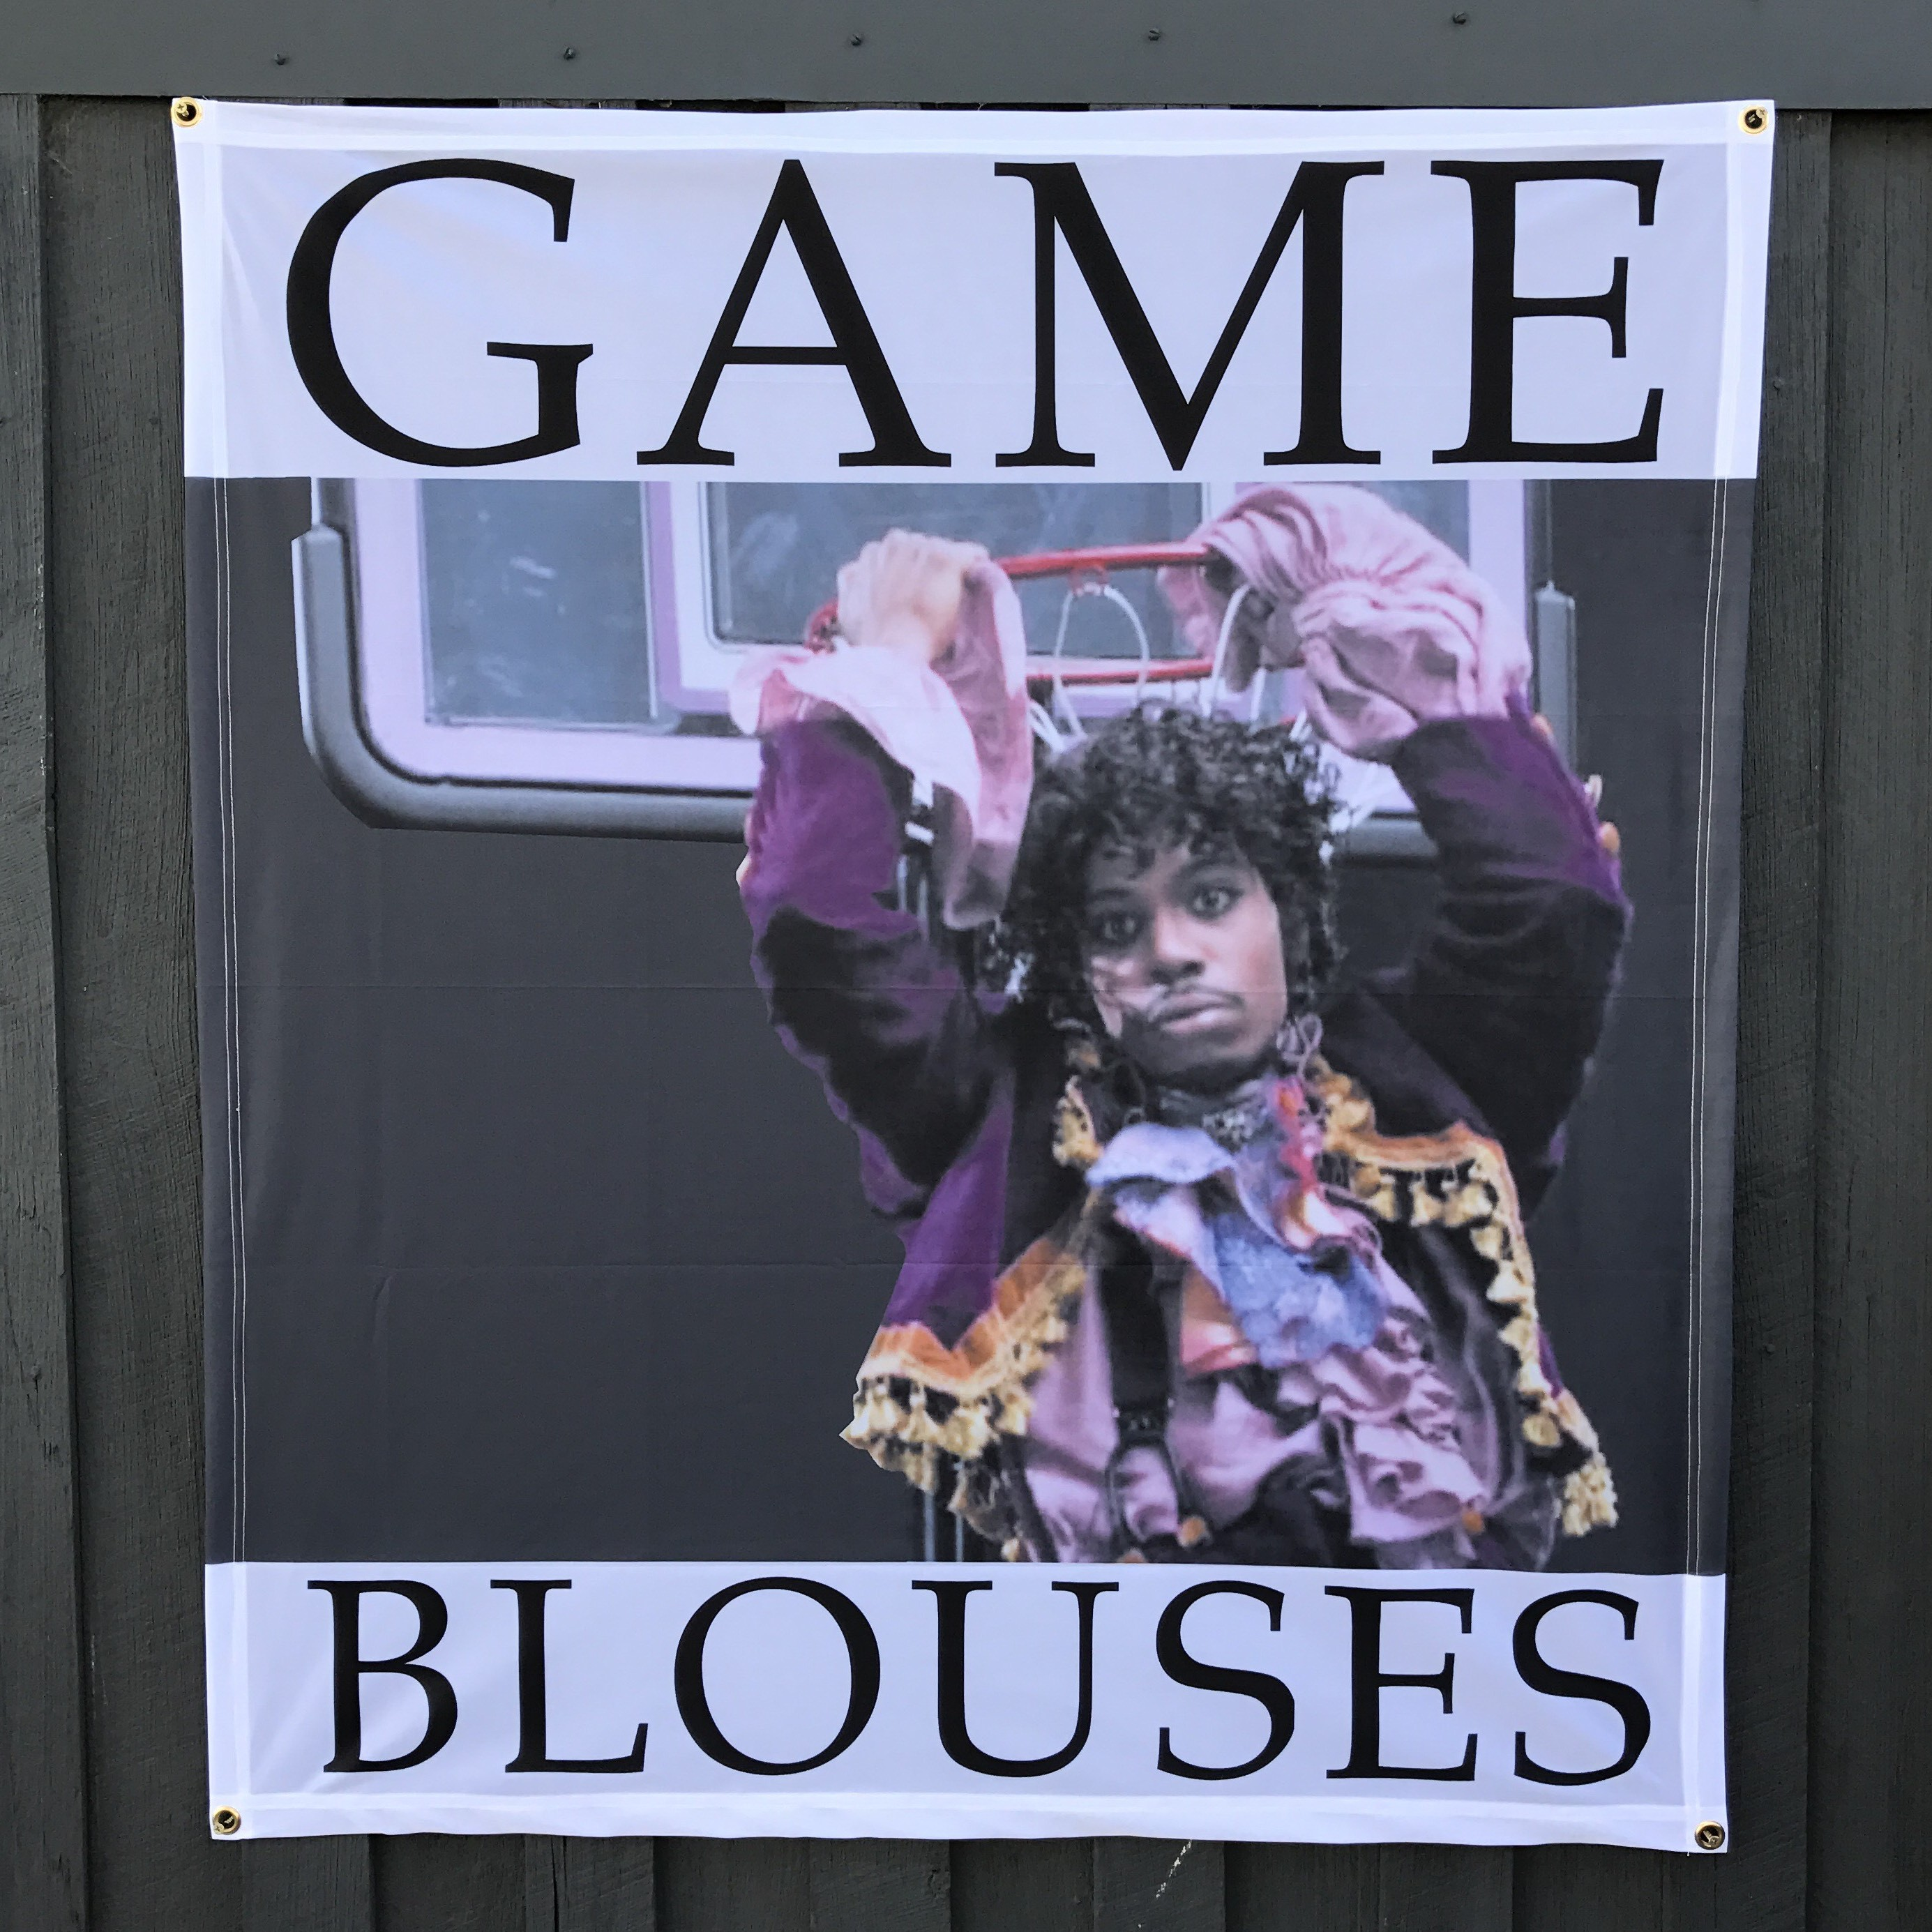 GAME BLOUSES PRINCE WALL HANGING 1060 X 1200MM